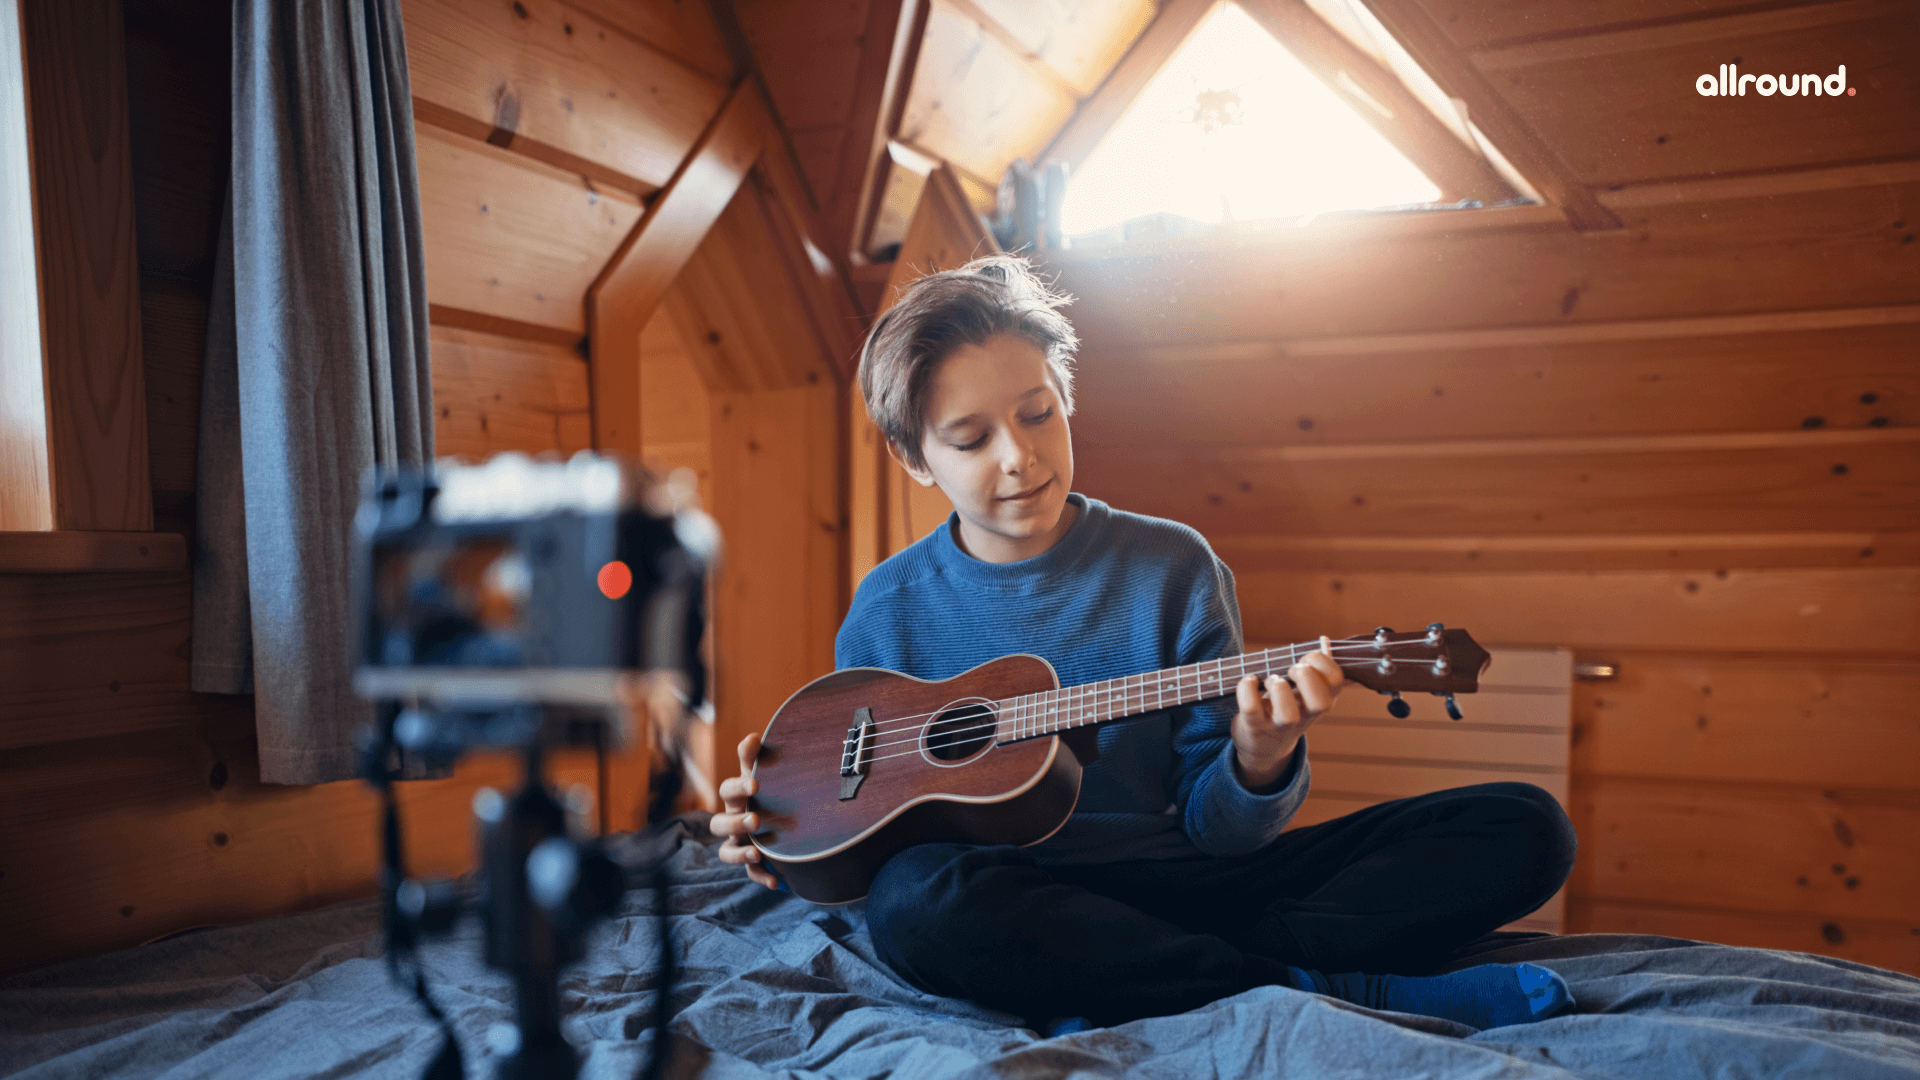 The Complete Musician's Guide to YouTube